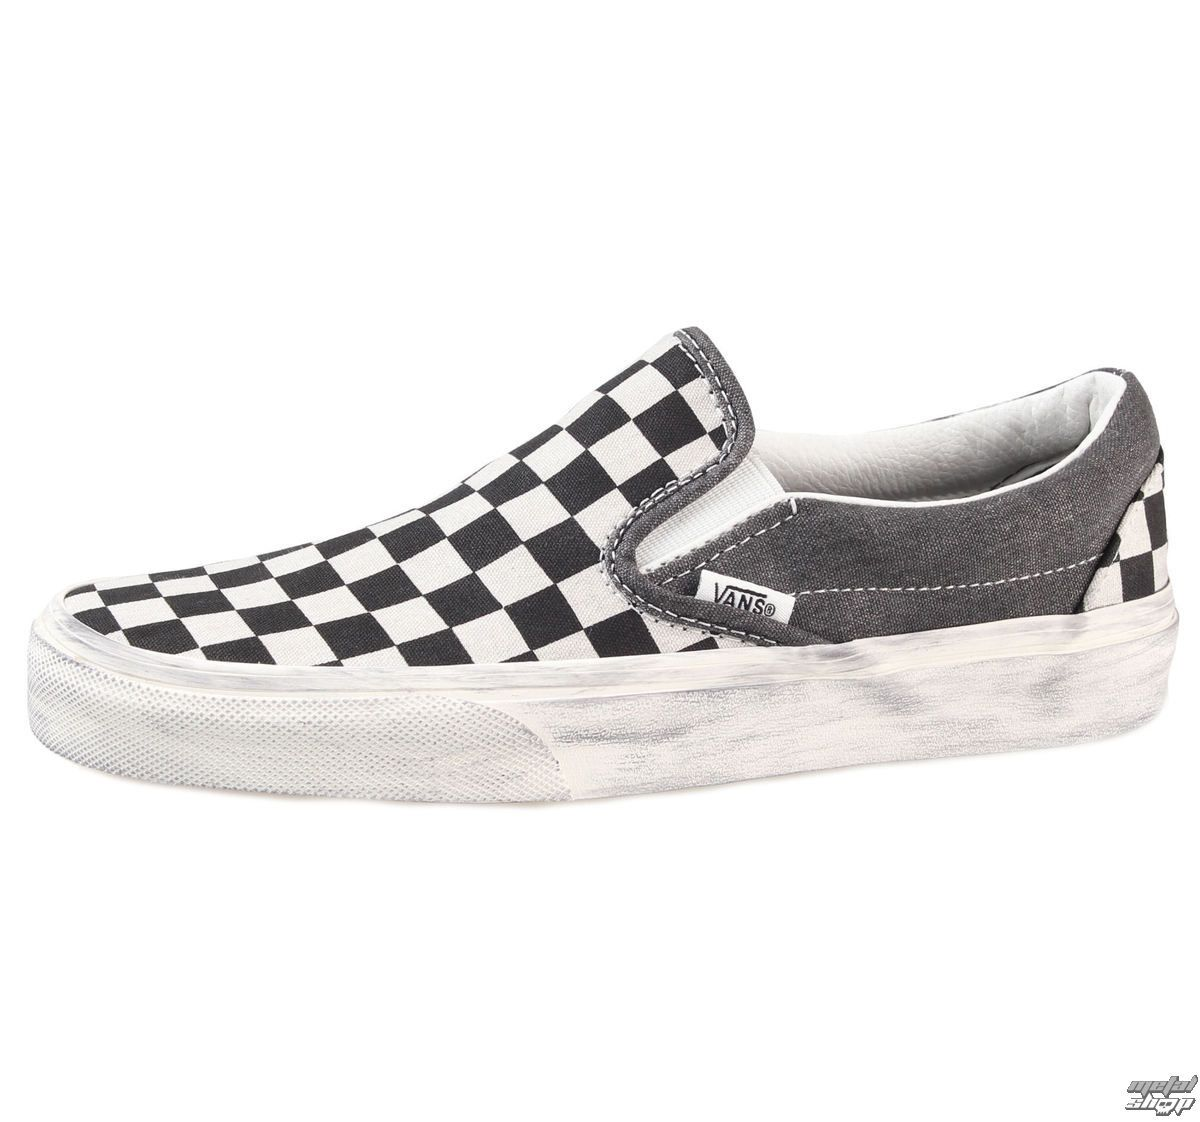 Vans shoes Classic Slip On (Overwashed) Black Check